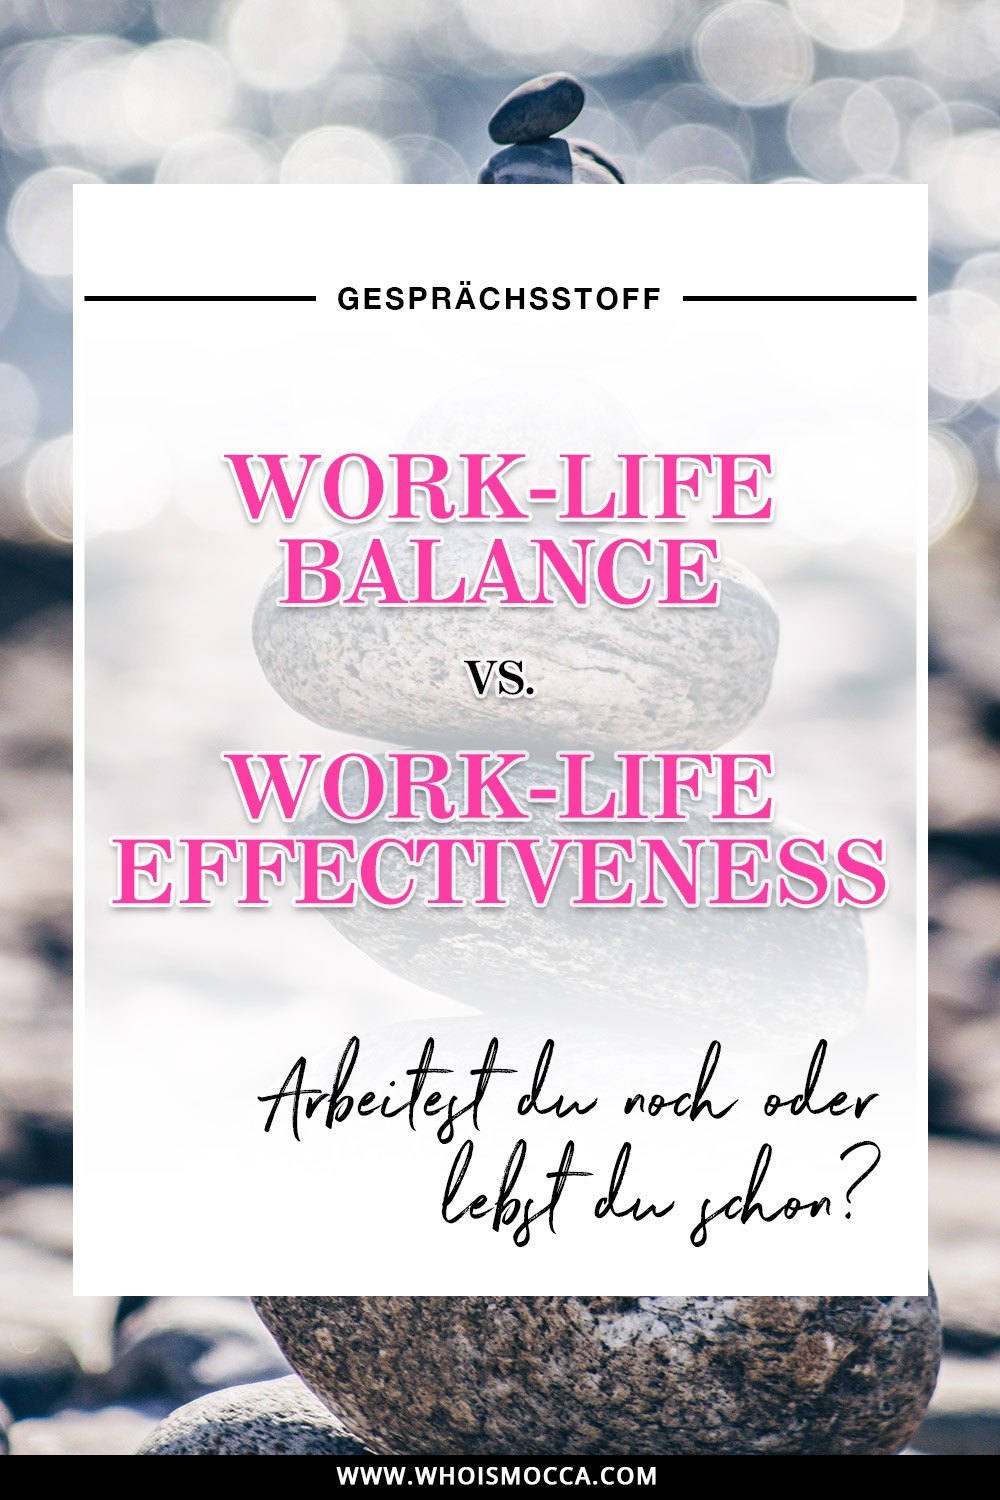 Work Life Balance vs. Work Life Effectiveness, Karriere Blog, Woman at Work, Selbstständig arbeiten, Business Blog, Style Blog, www.whoismocca.com